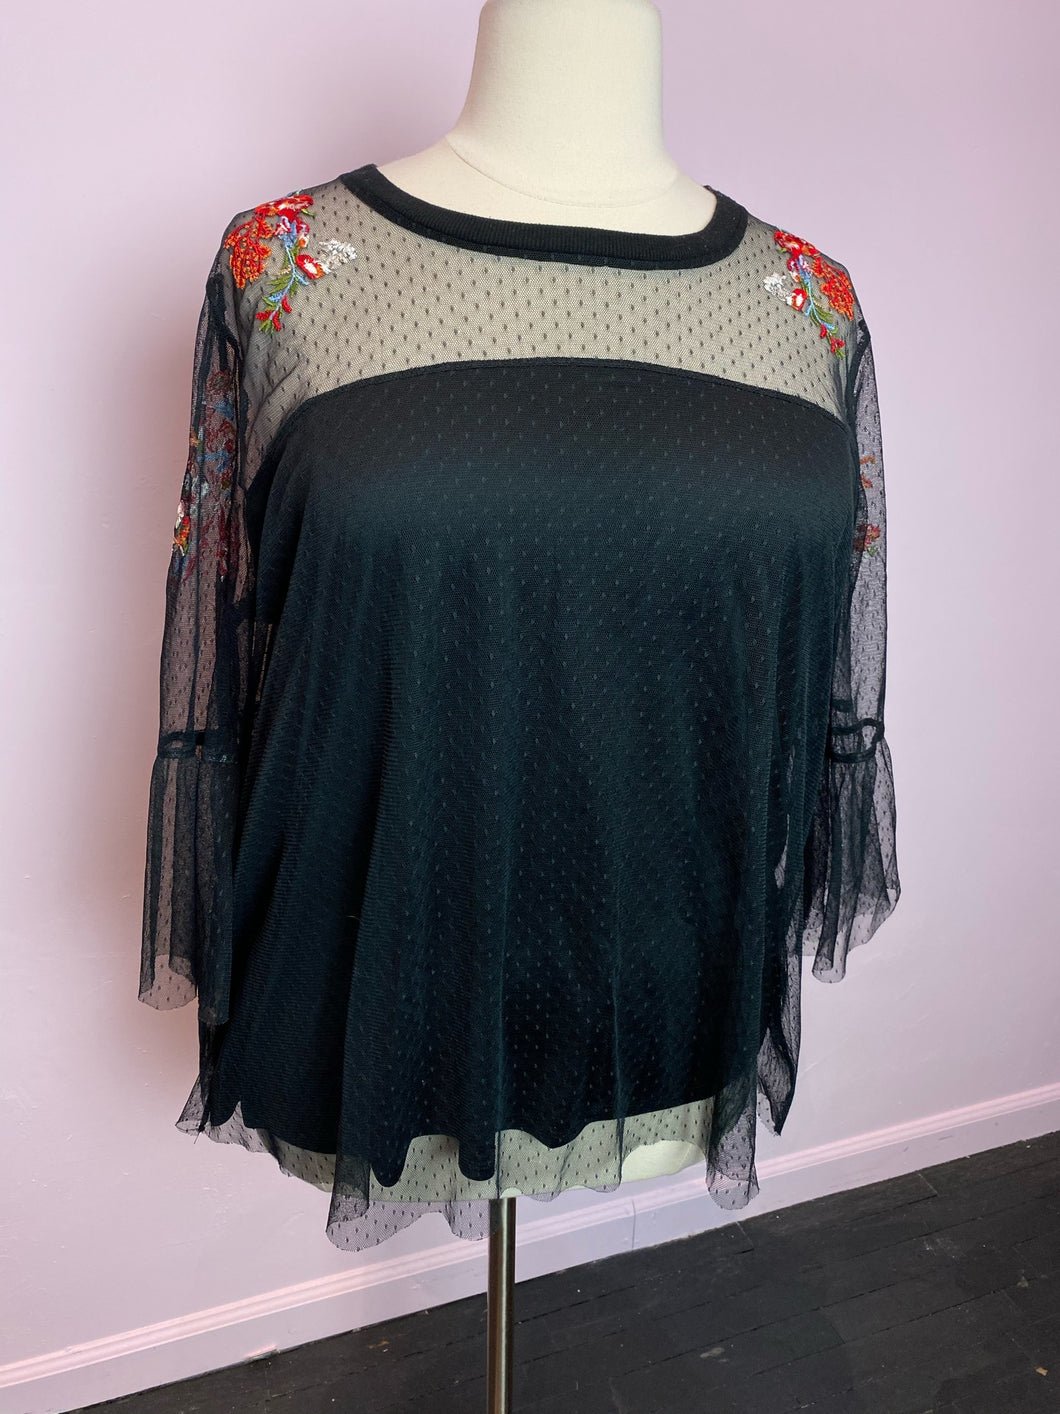 Torrid Mesh and Floral Illusion Top Size 3